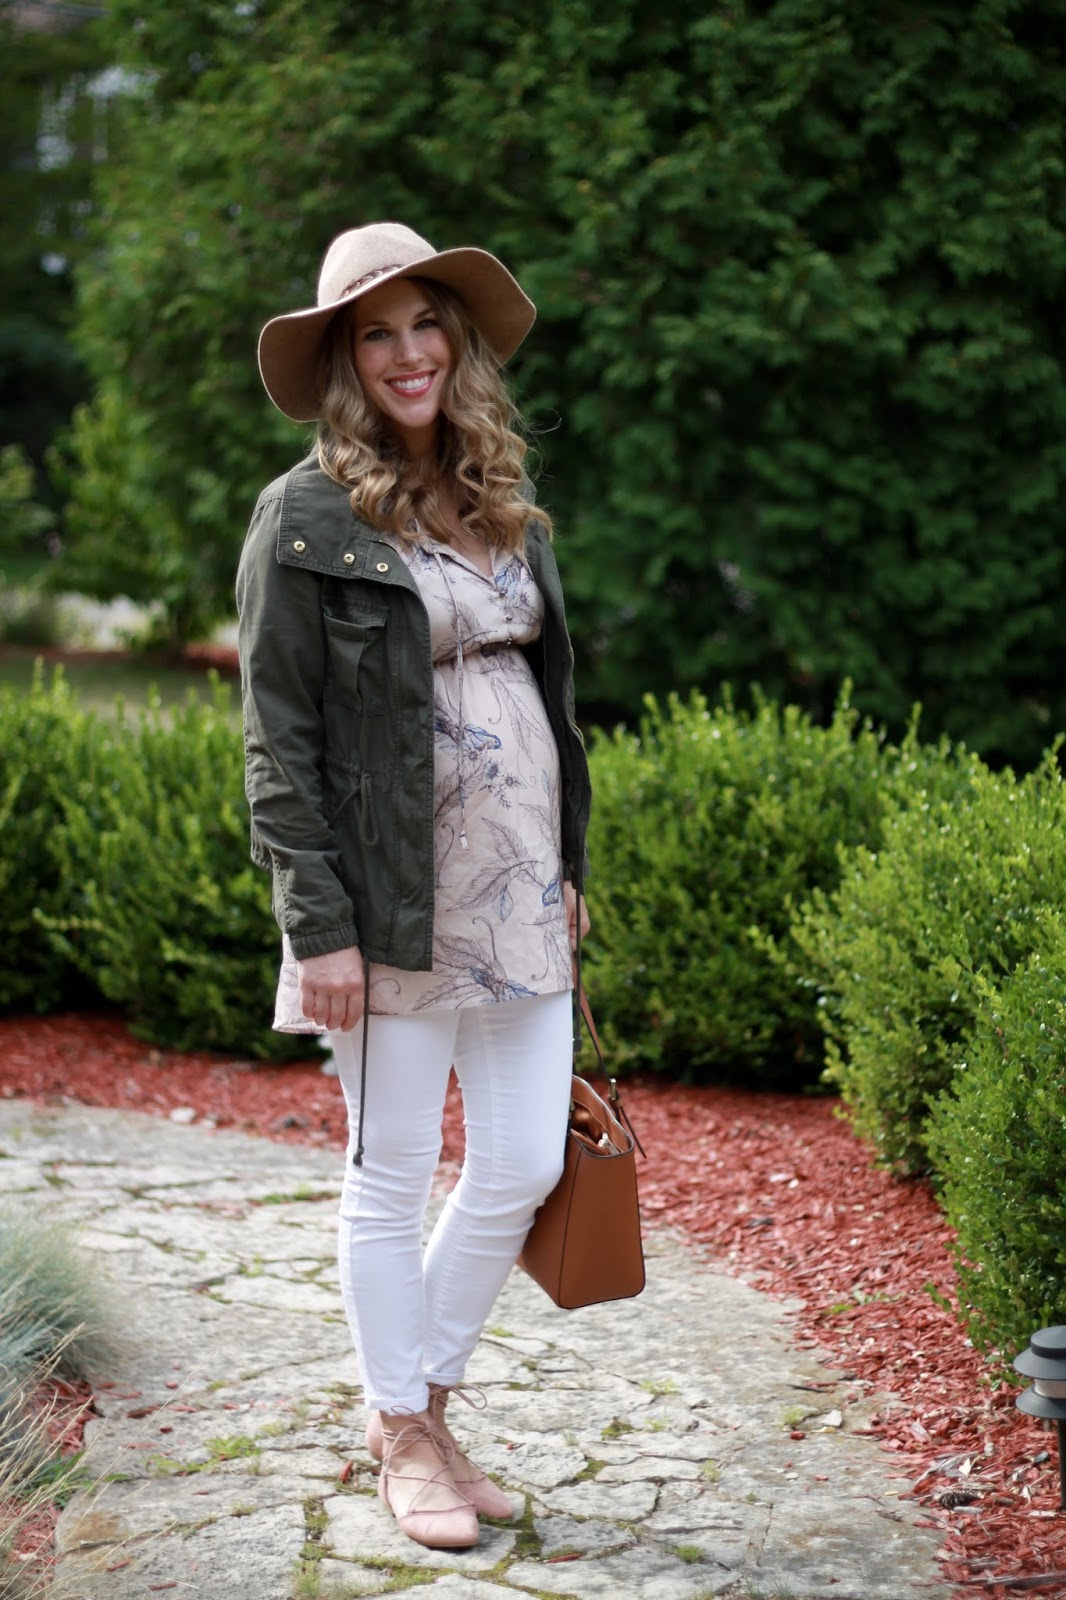 blush floral top, white jeans, cargo jacket, blush lace up flats, tory burch tote, wide brim hat, fall maternity outfit